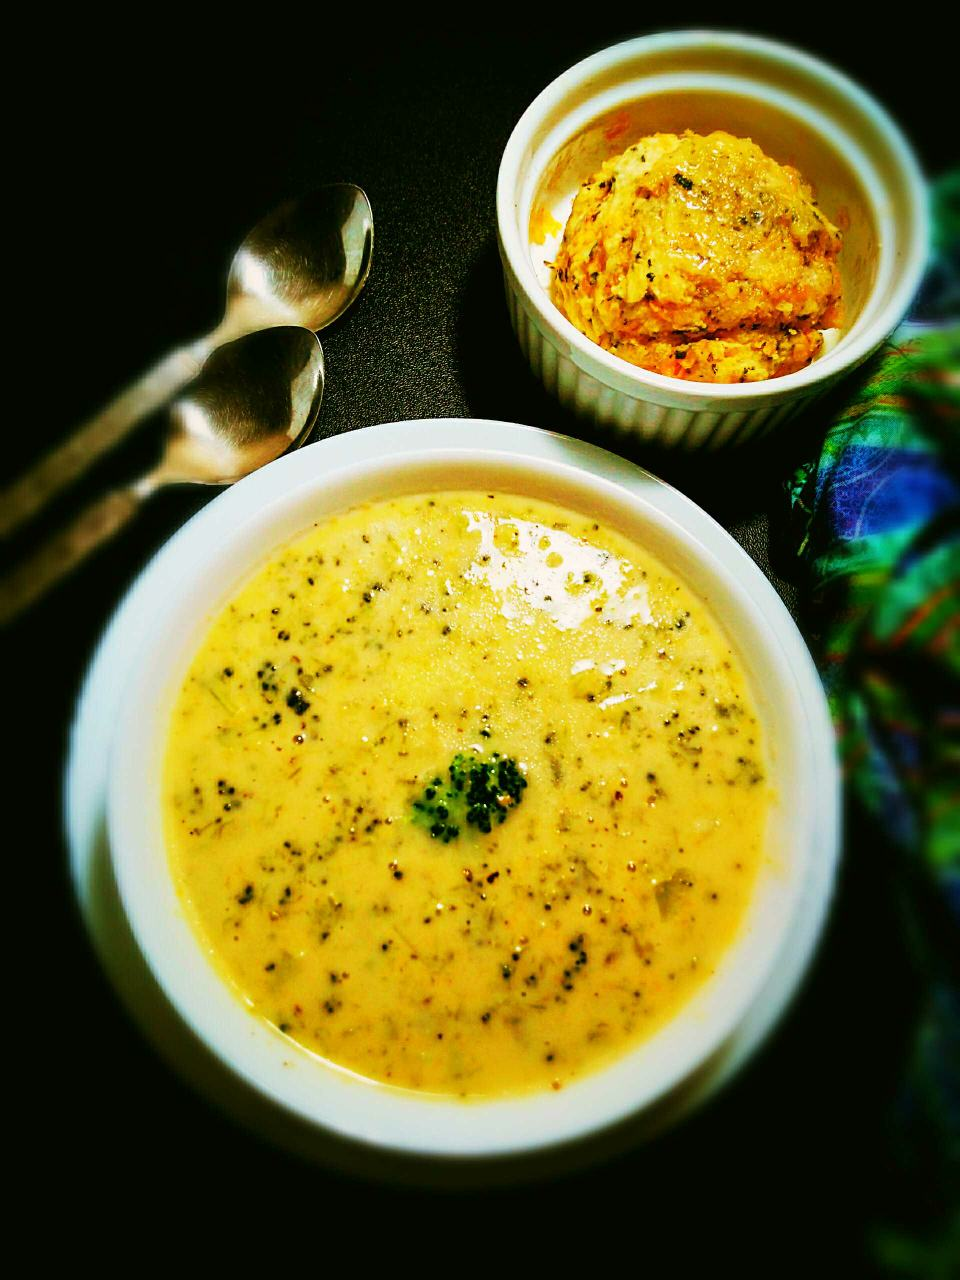 Microwave Broccoli Cheddar Soup with microwave cheese bread